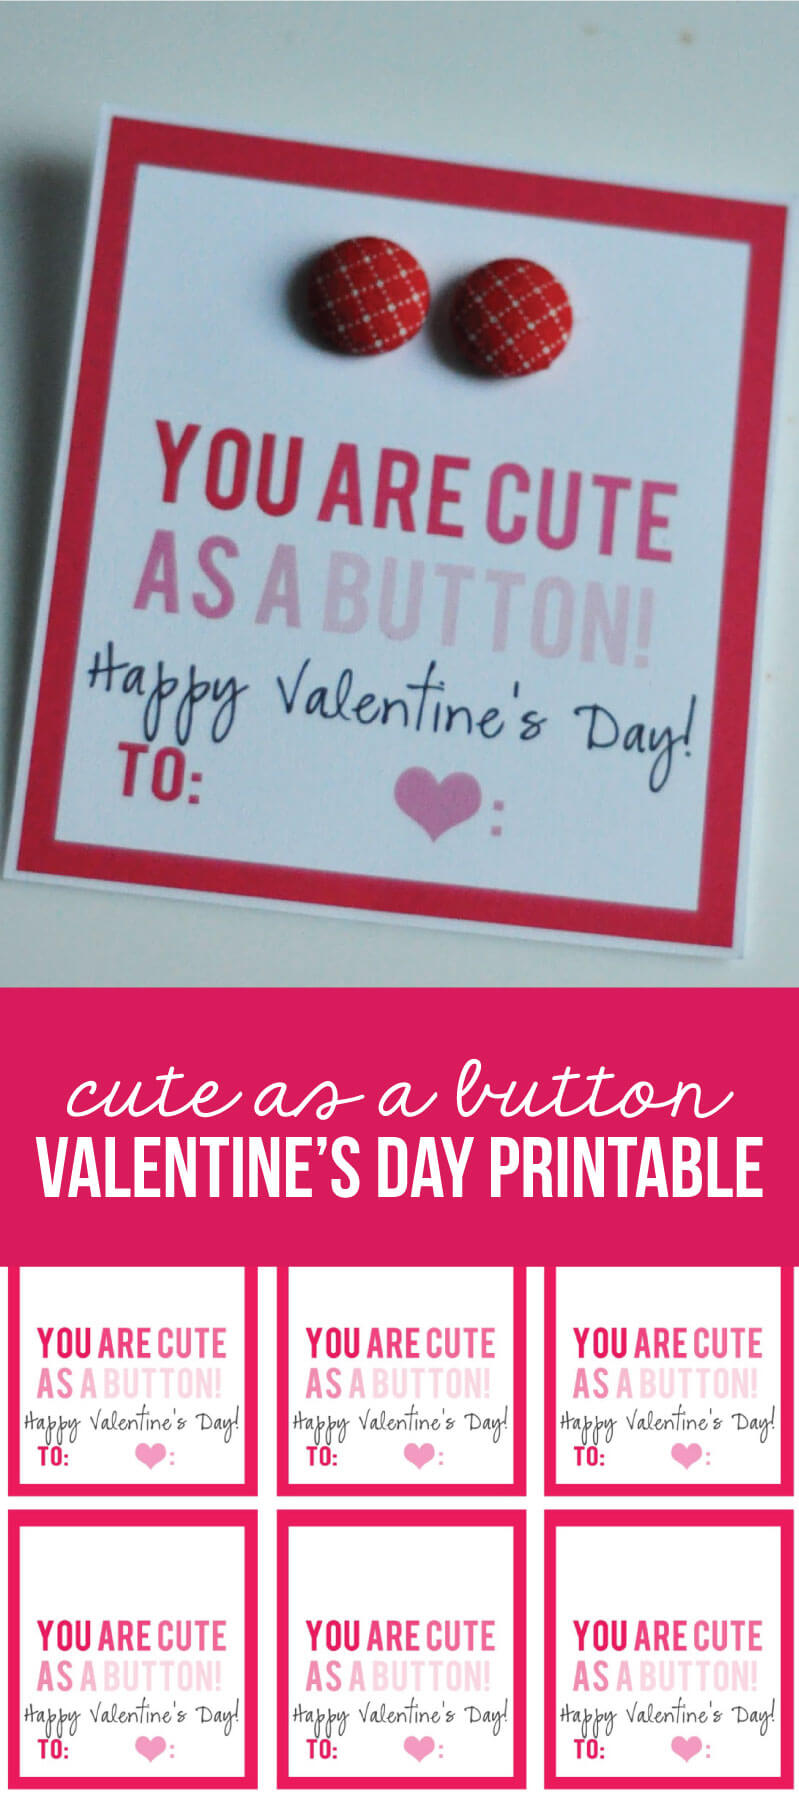 Cute as a button printable Valentine's Day Idea from www.thirtyhandmadedays.com